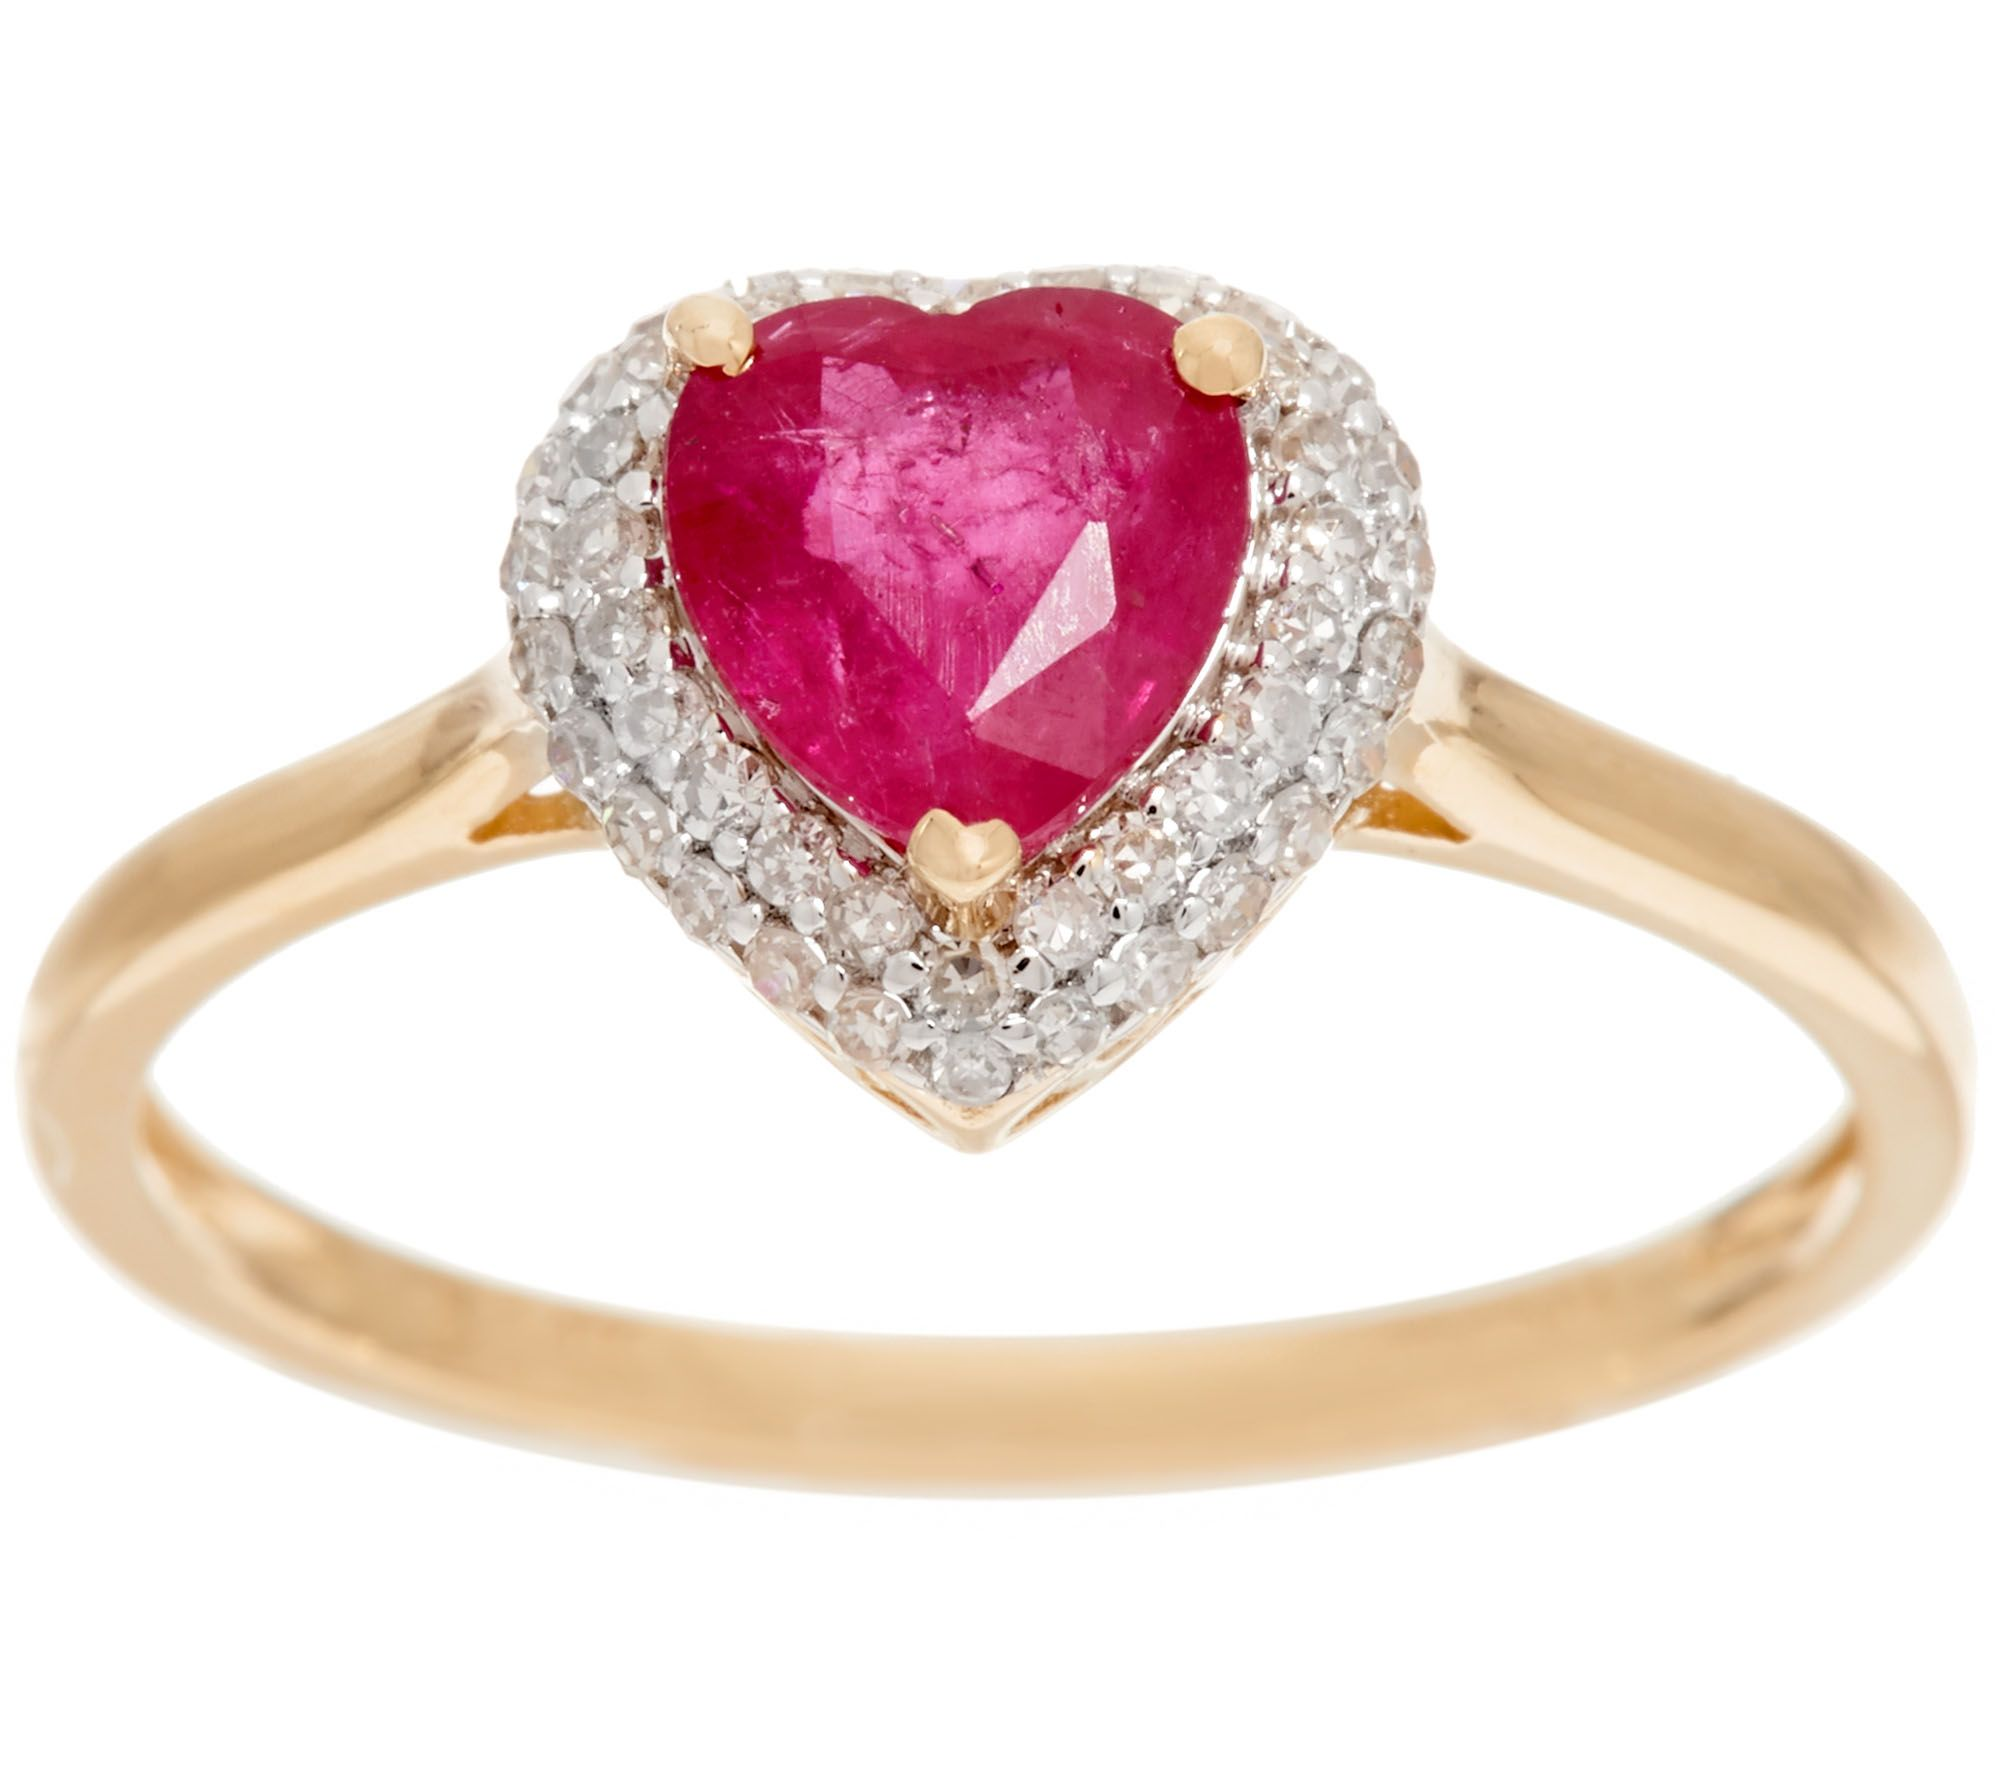 Heart Cut Mozambique Ruby & Diamond Ring, 14K Gold, 0.80 ct